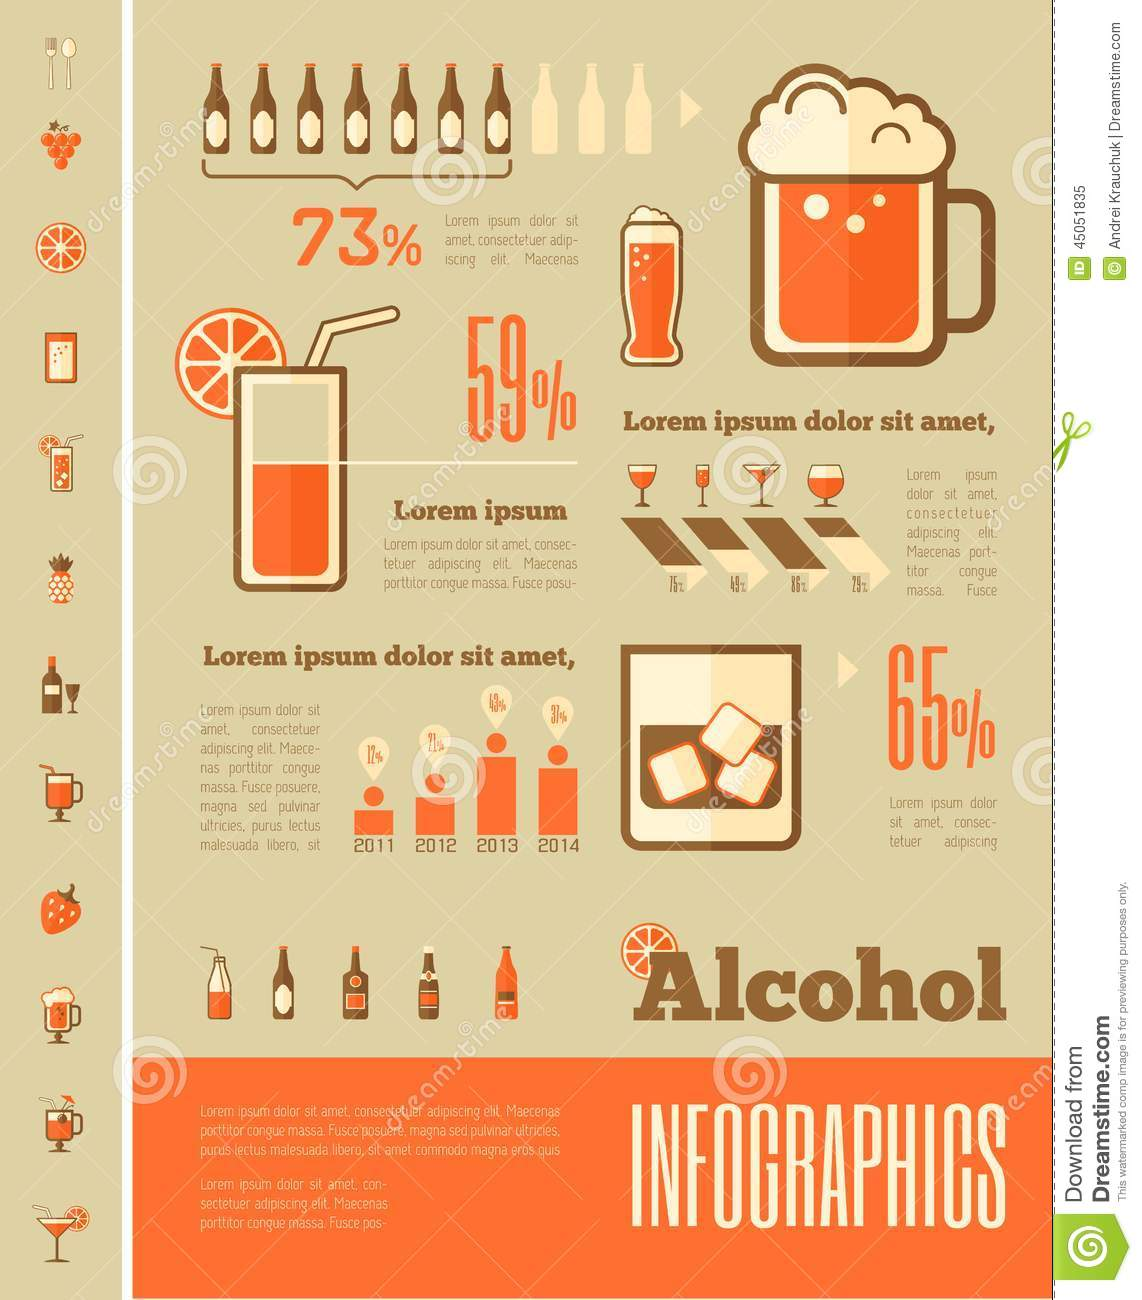 Alcohol Infographic Template. Stock Vector - Illustration of data ...